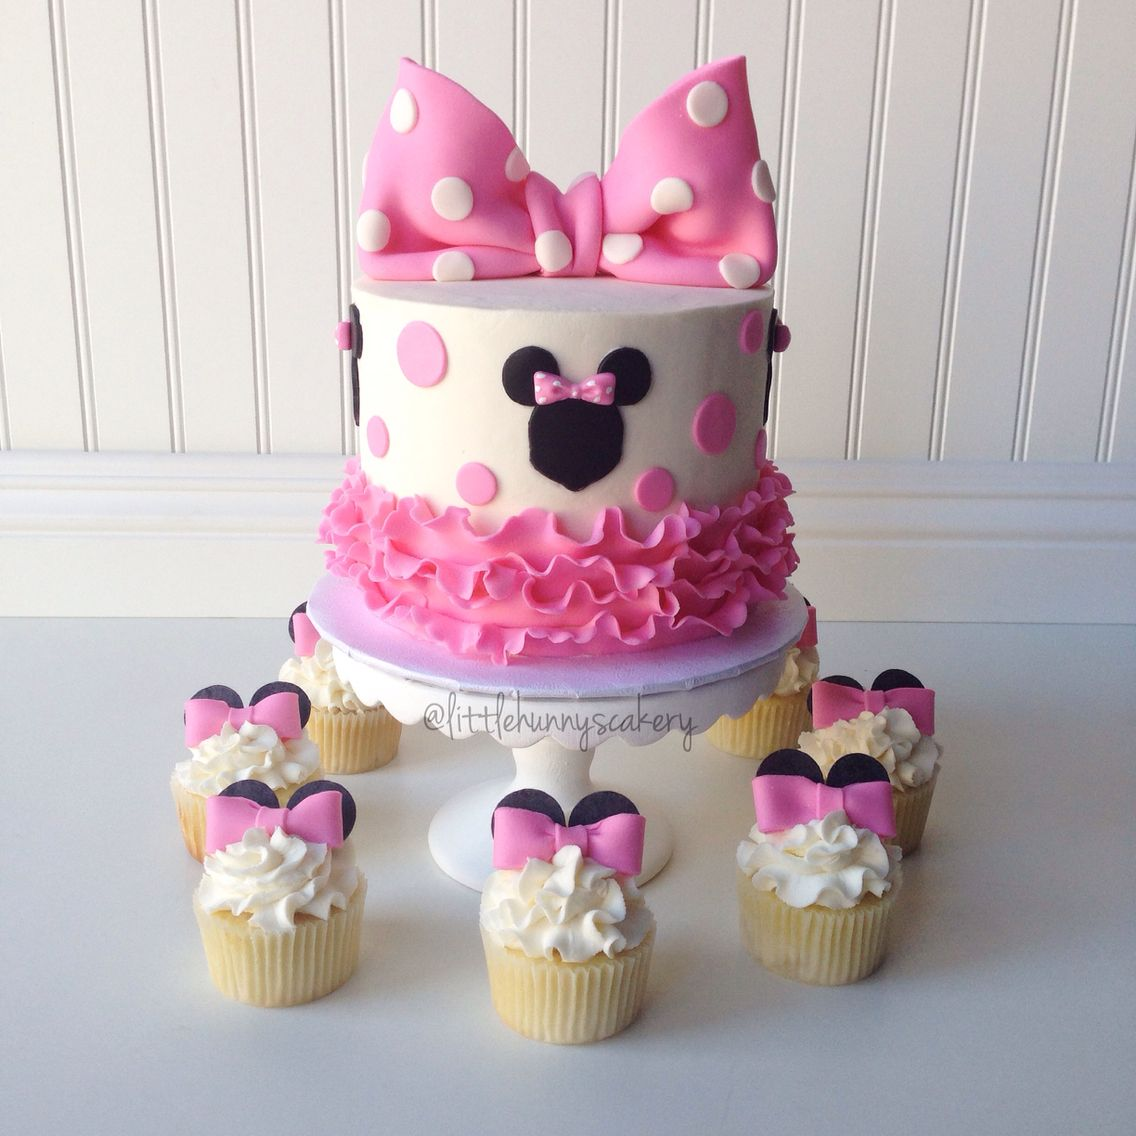 Astounding Minnie Mouse Cake And Cupcakes With Images Minnie Mouse Personalised Birthday Cards Veneteletsinfo